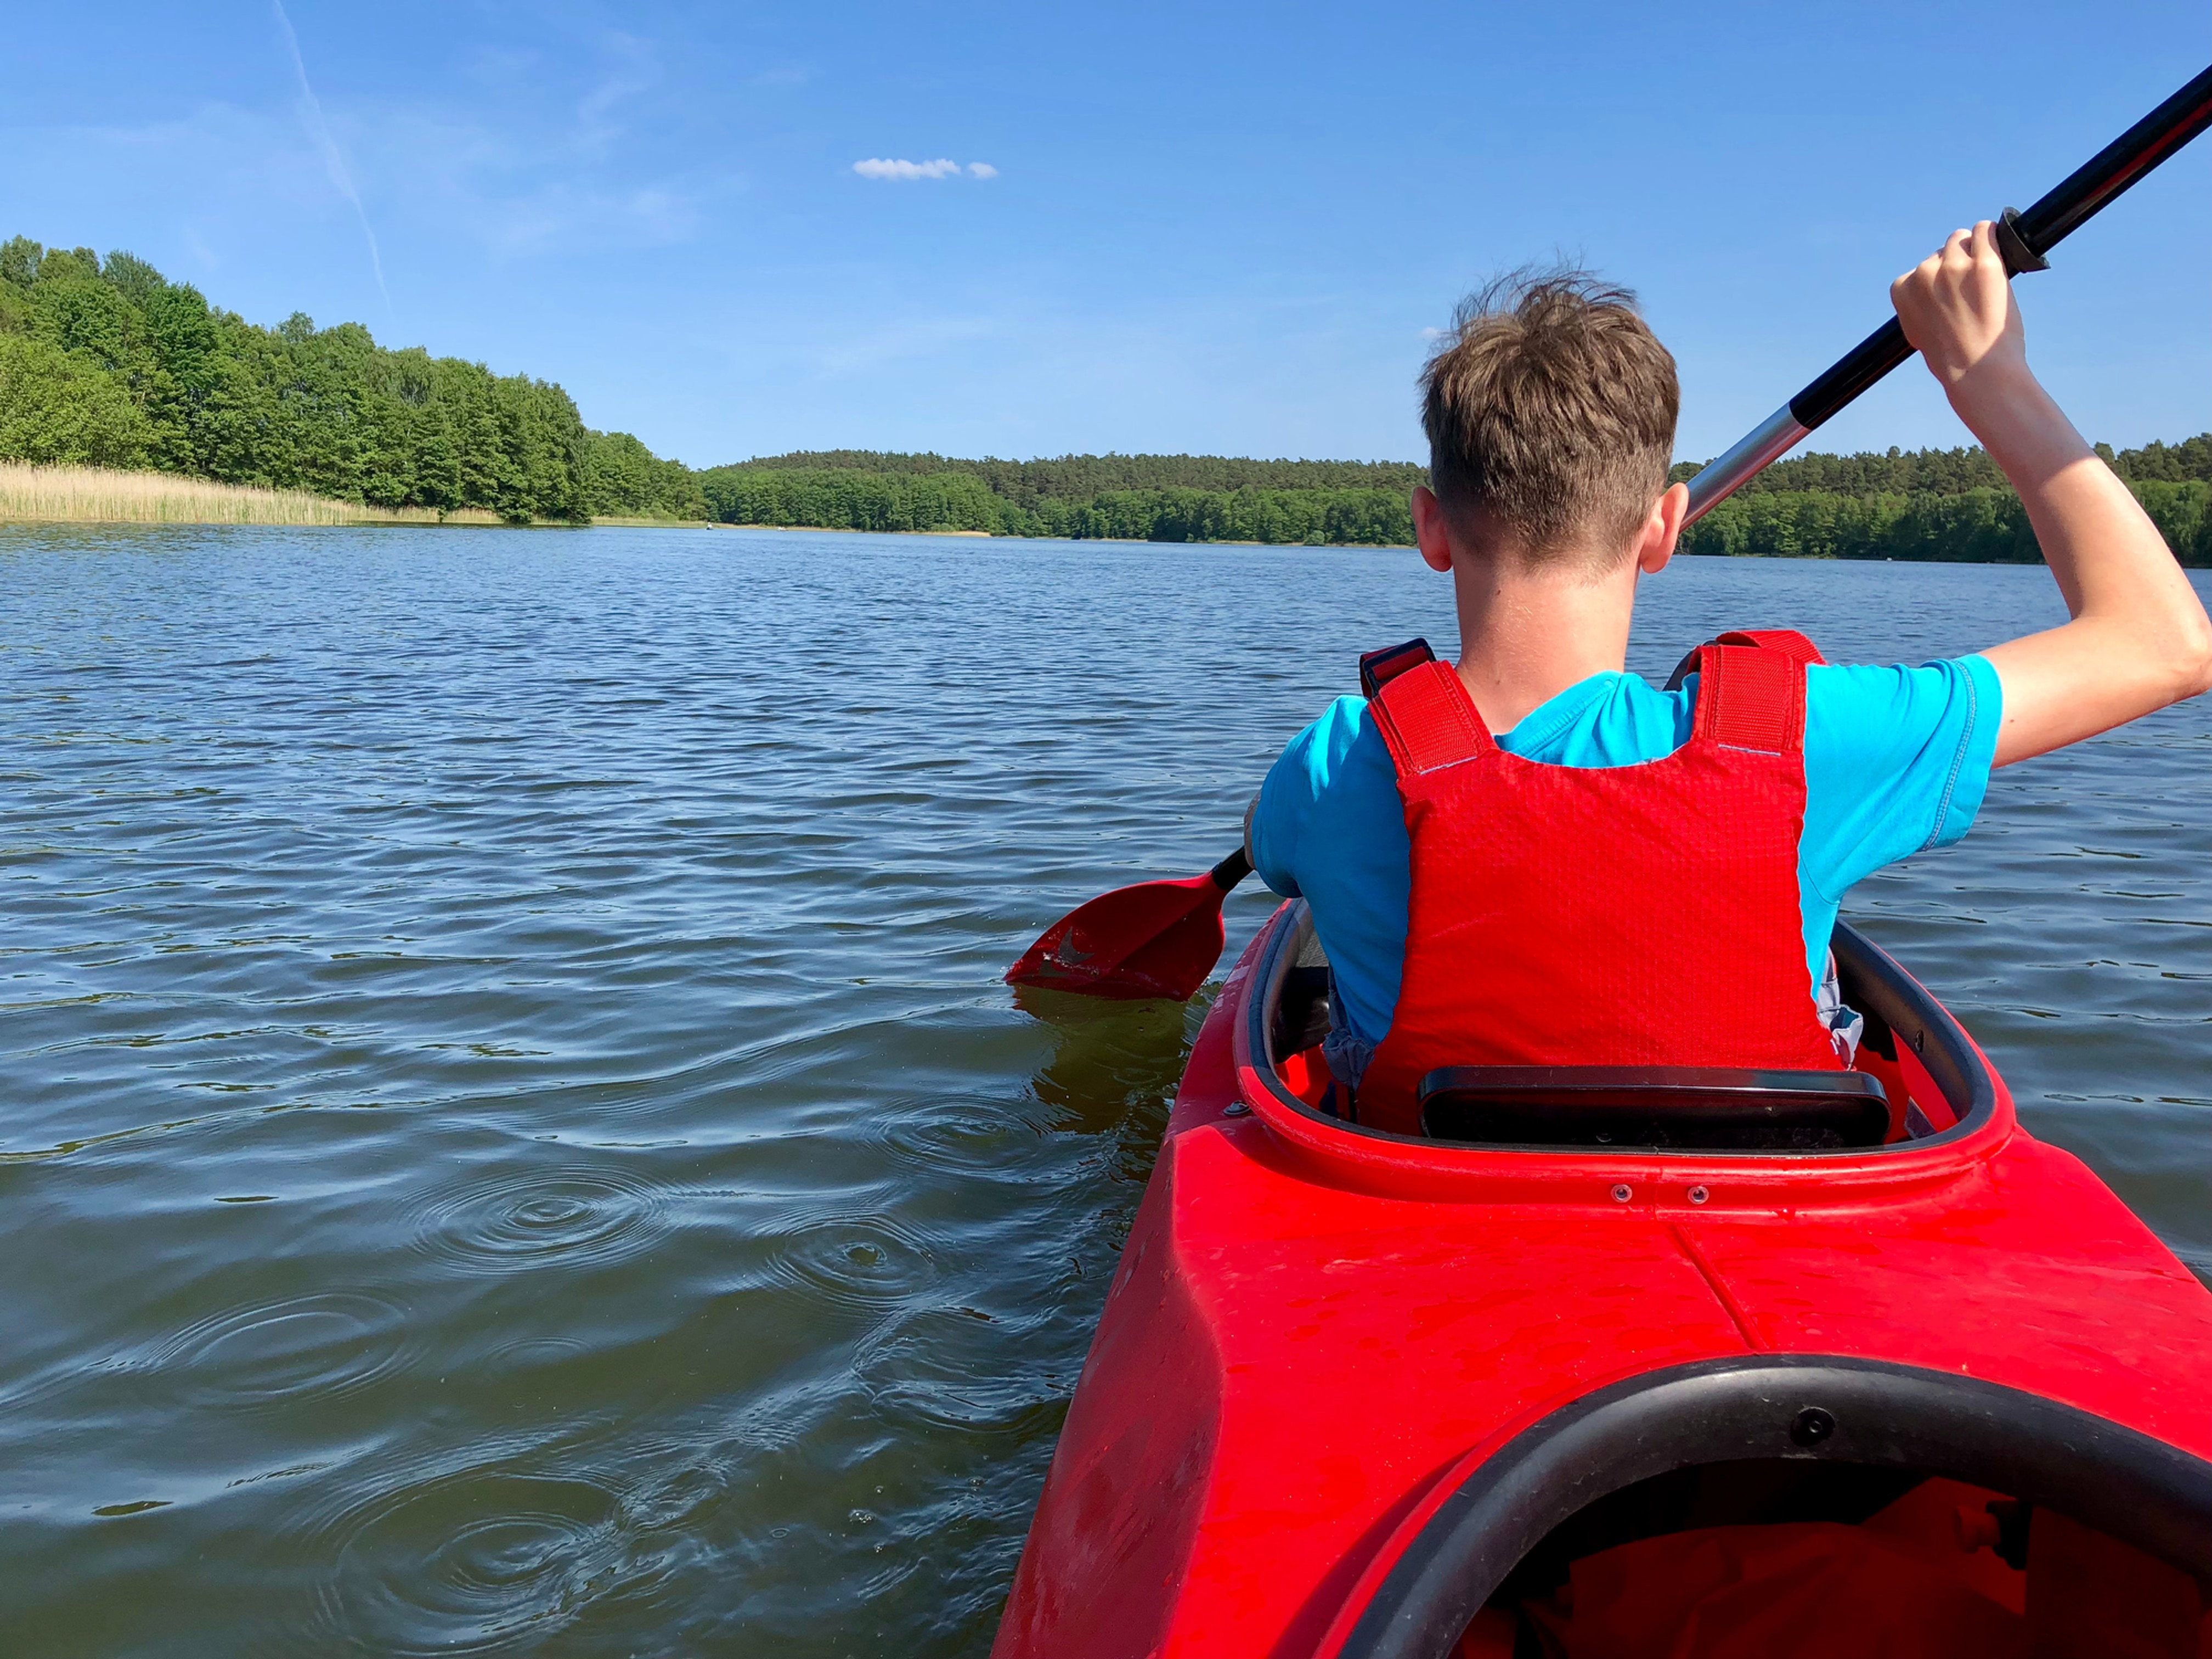 Tandem (Double) Kayak for 1.5 Hours